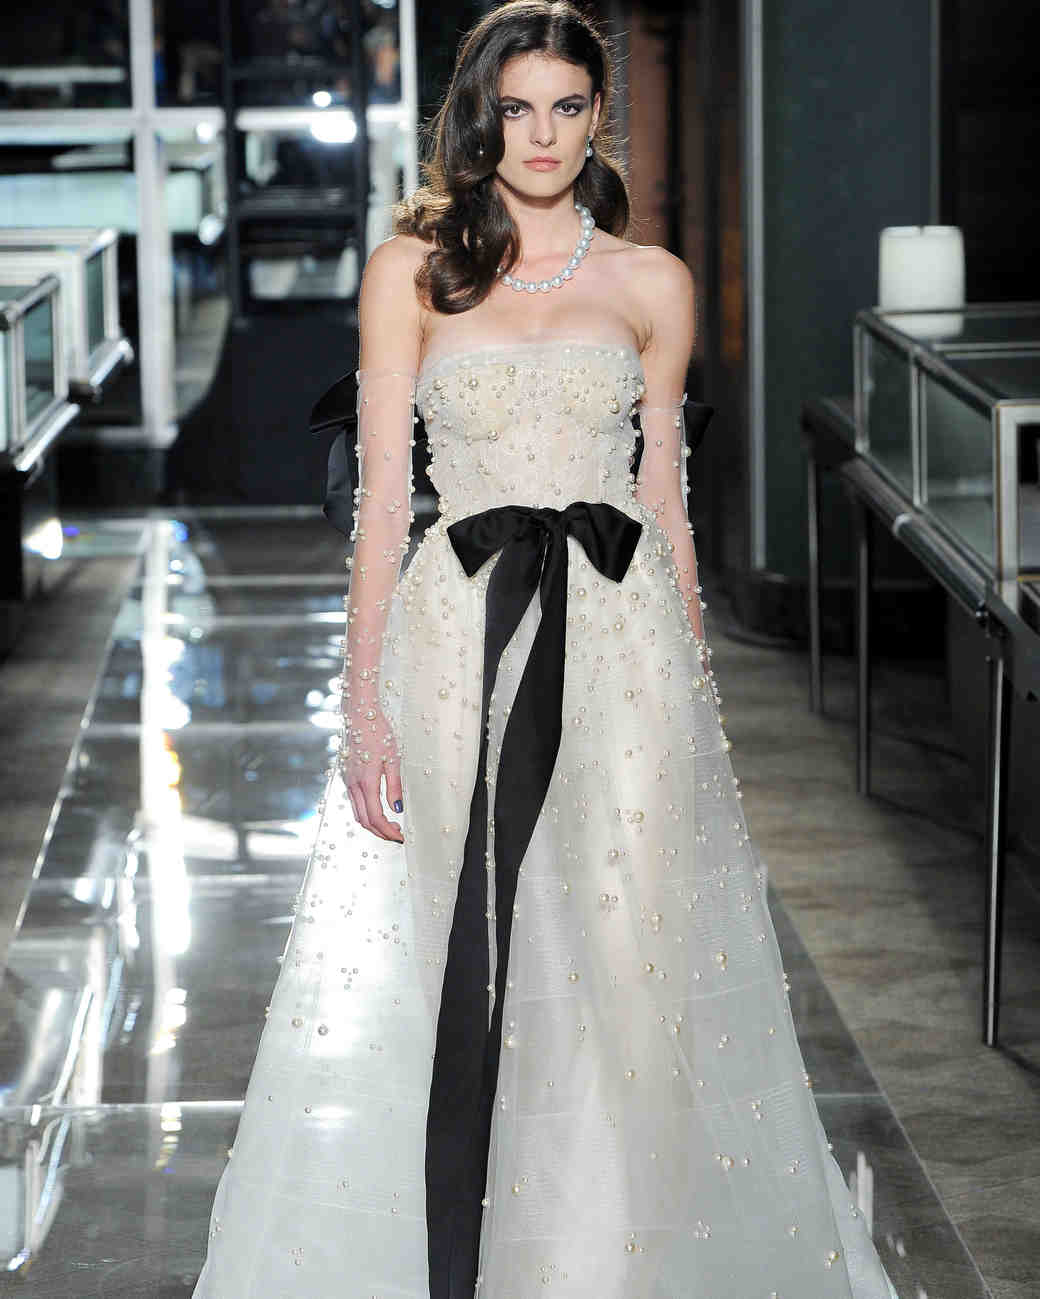 reem acra spring 2018 a-line wedding dress with black bow